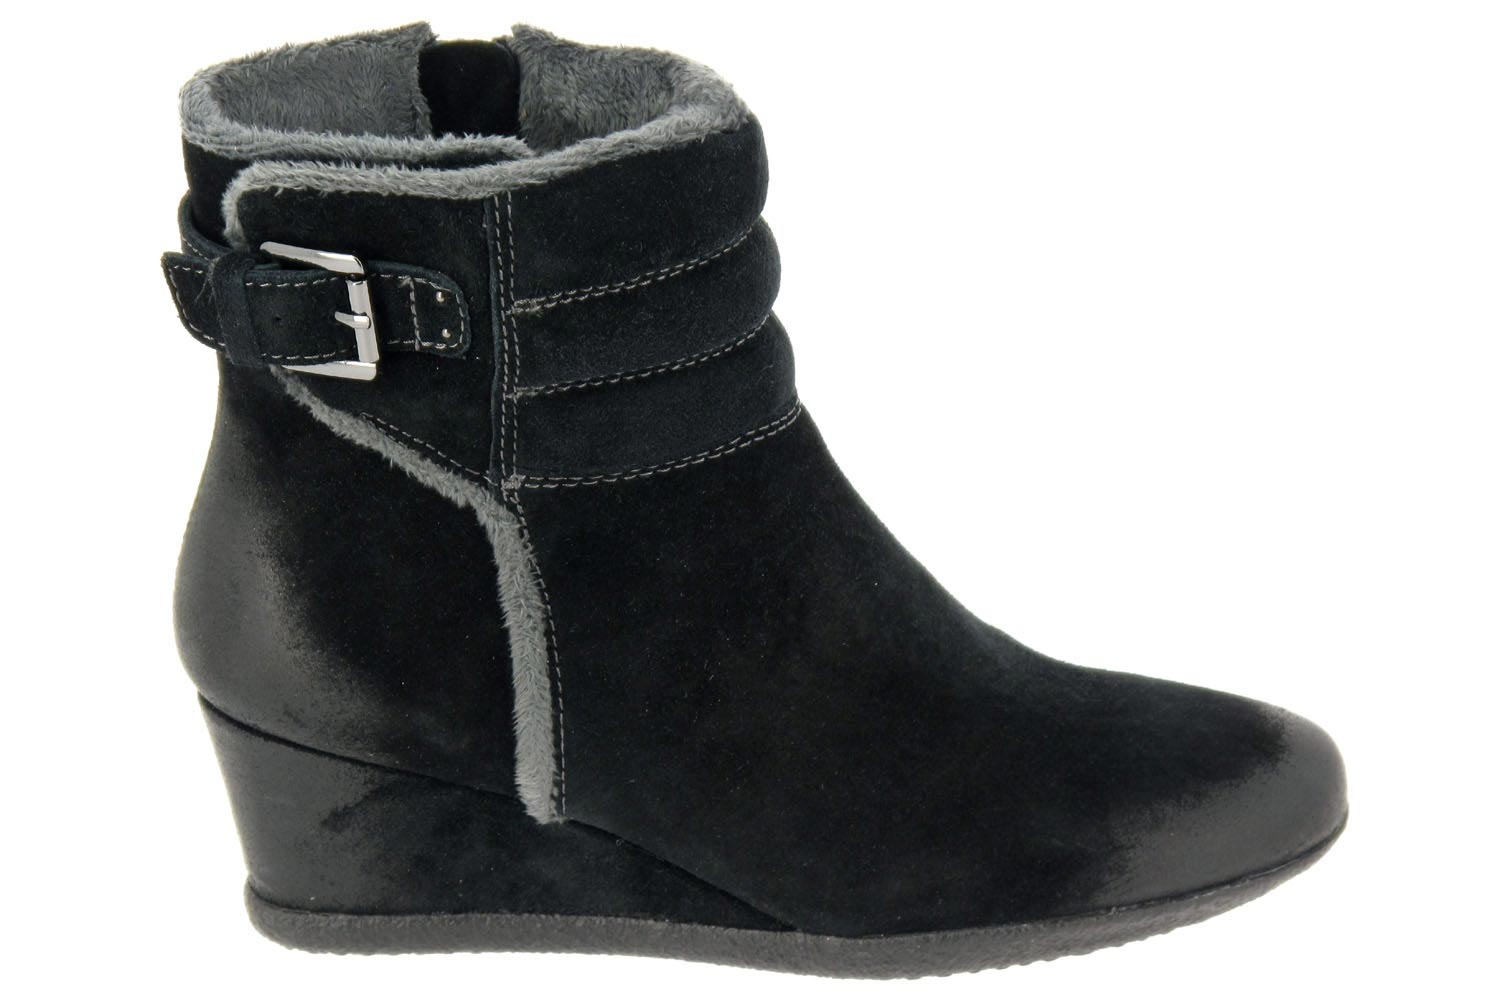 Fourrees Noir Montantes Fourrees Montantes Geox Geox Chaussures Chaussures D9IEH2